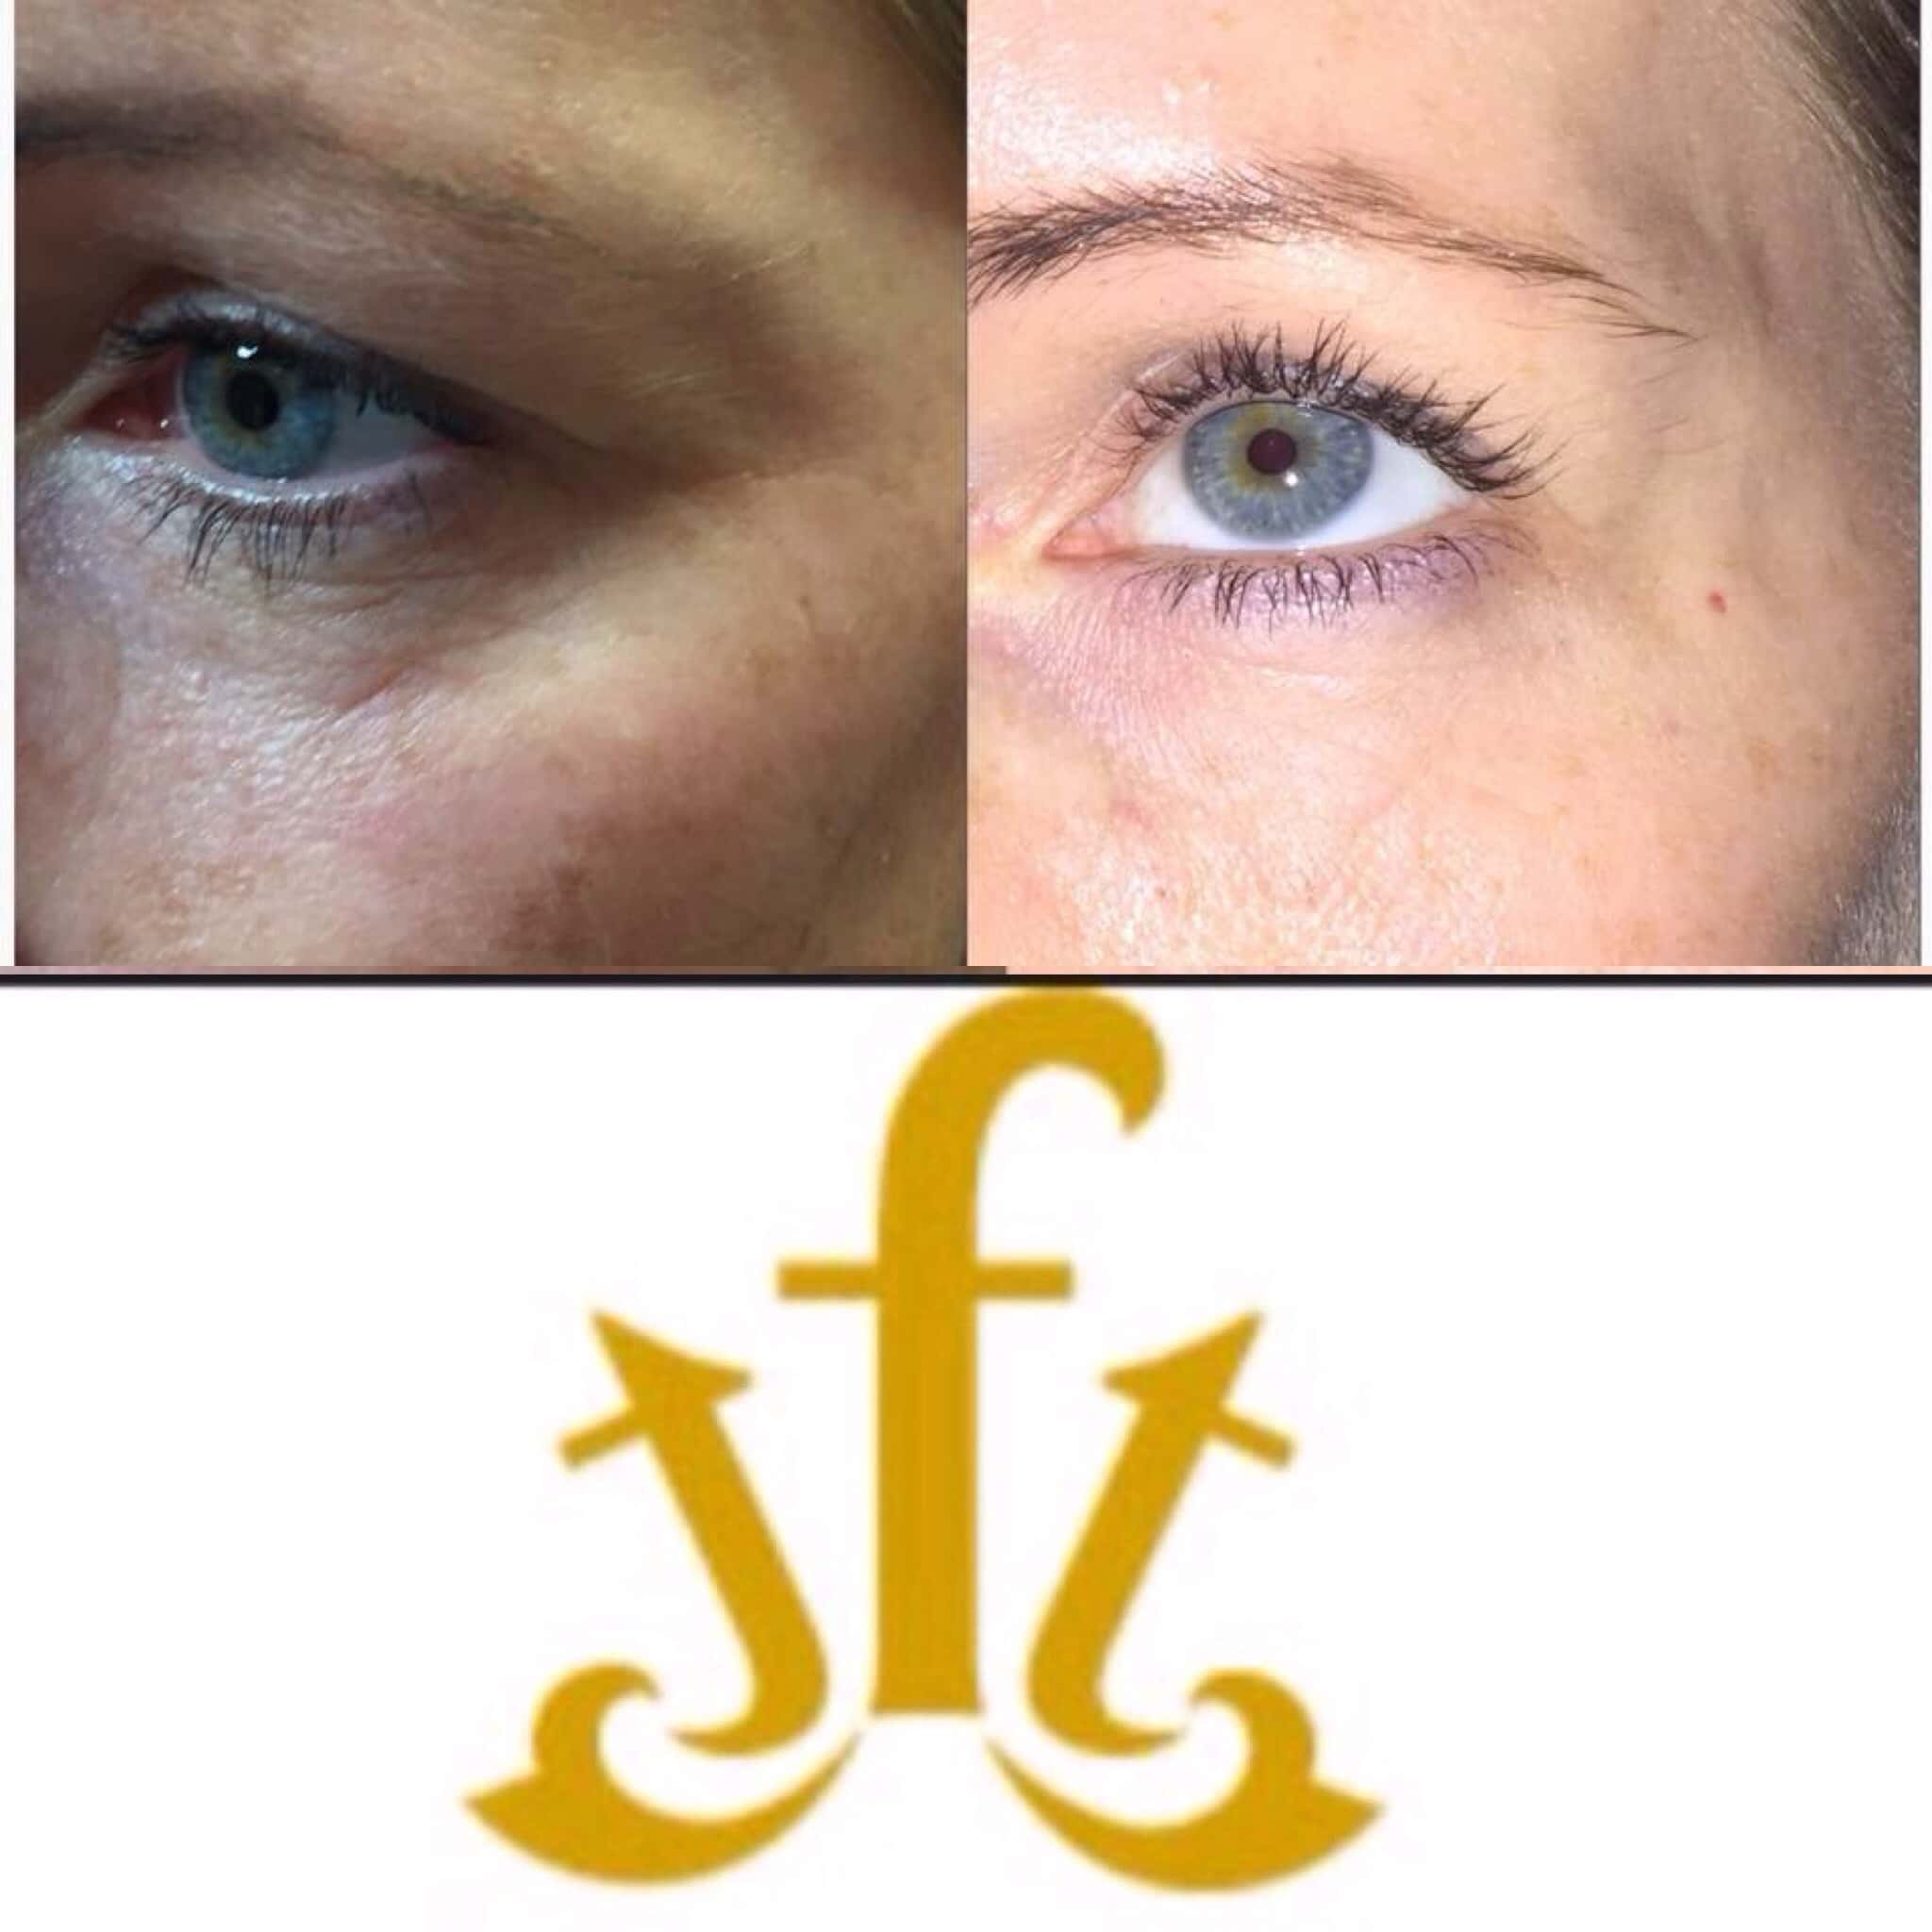 Ladies eye that has been treated showing before and after